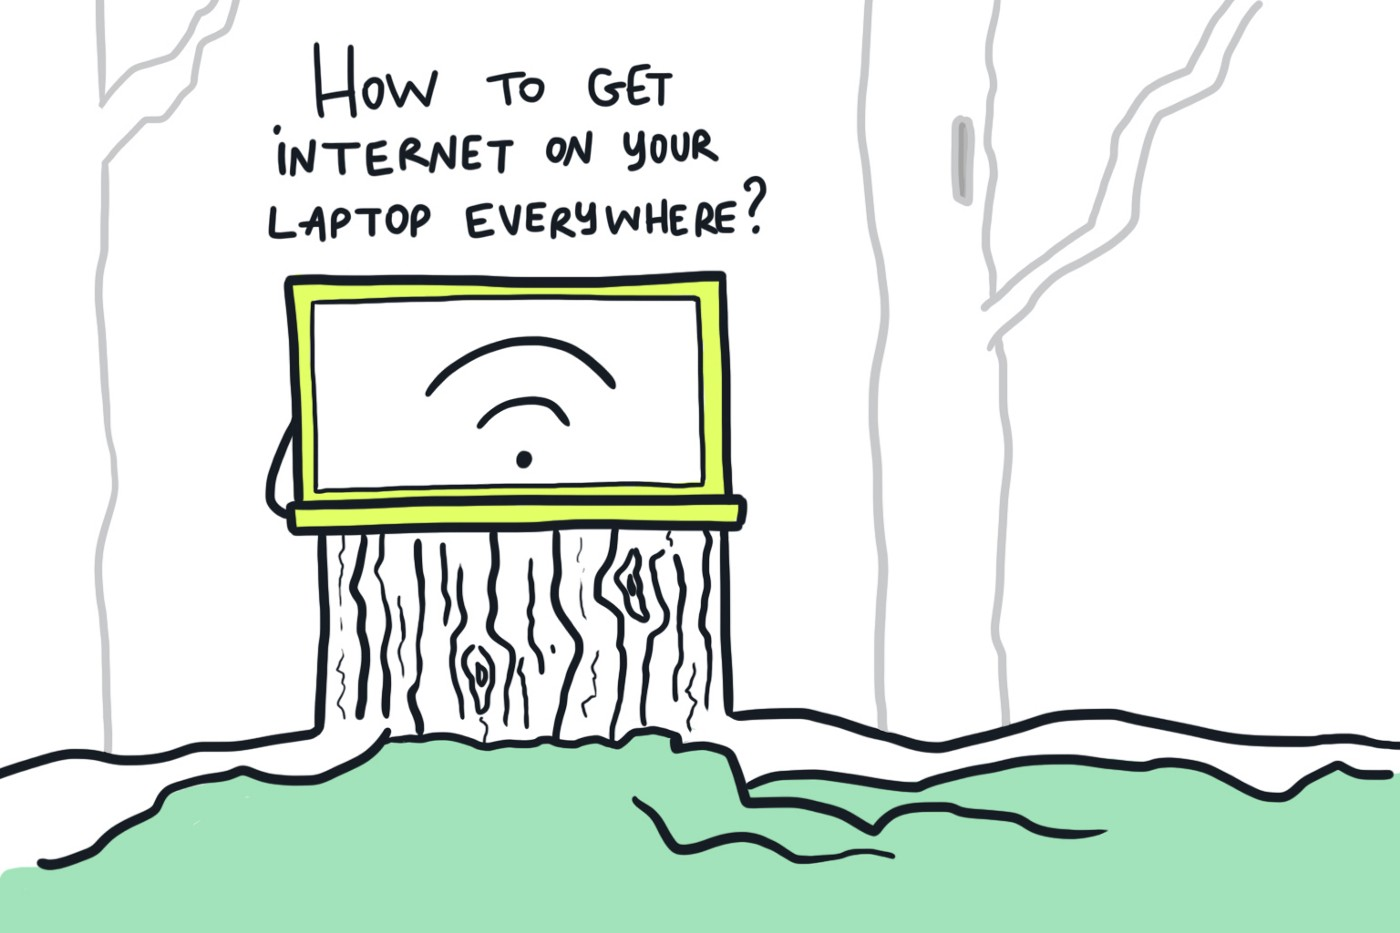 Get Internet on Your Laptop Everywhere